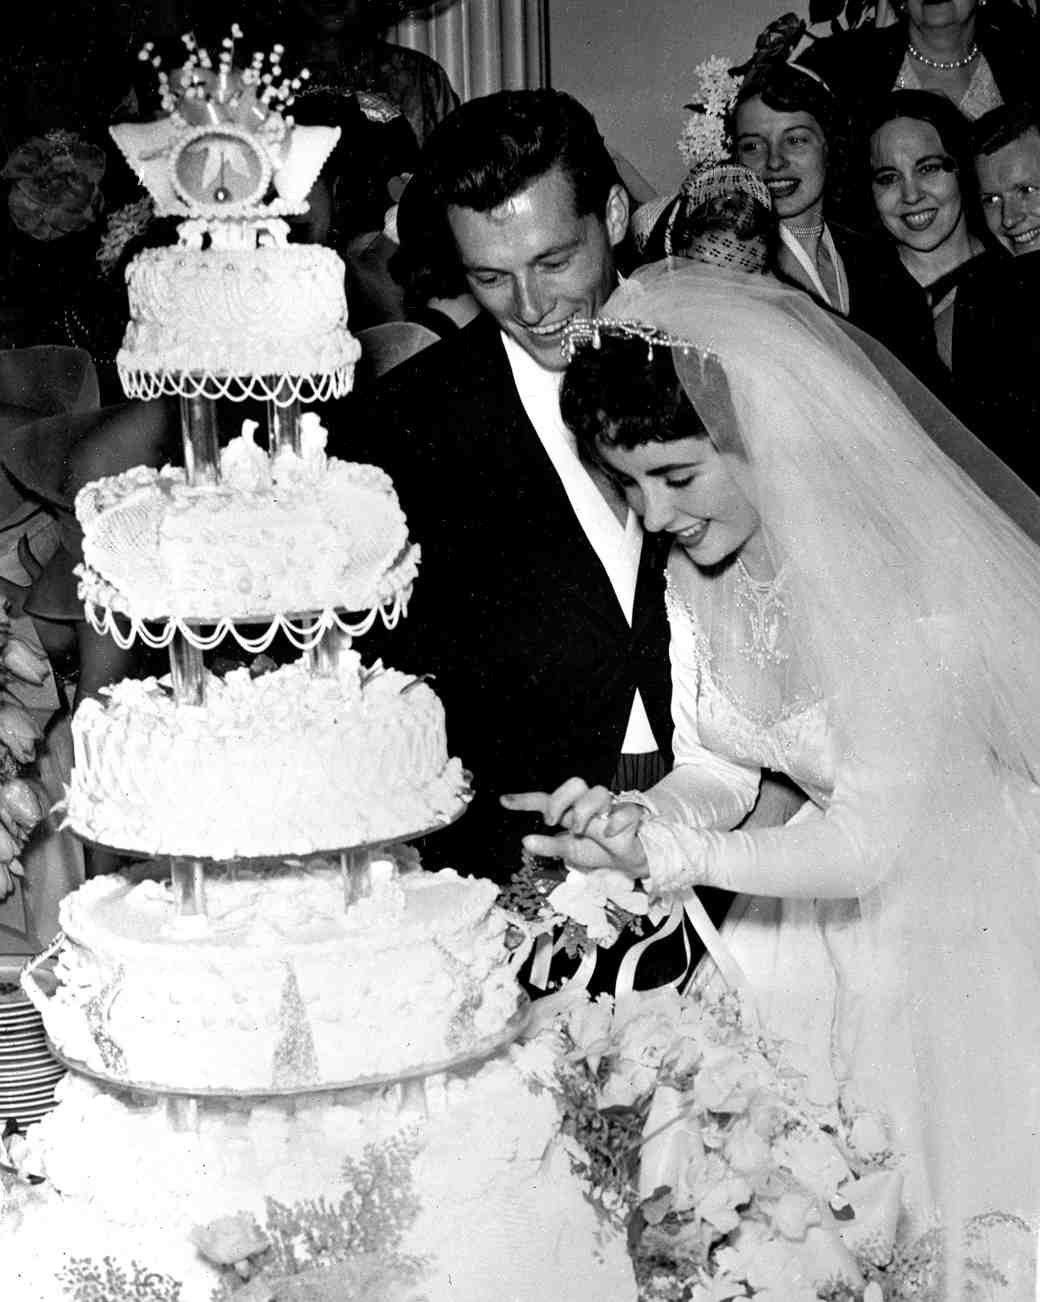 wedding cakes toppers wedding cakes pictures 16 Vintage Celebrity Wedding Cakes You ve Probably Never Seen